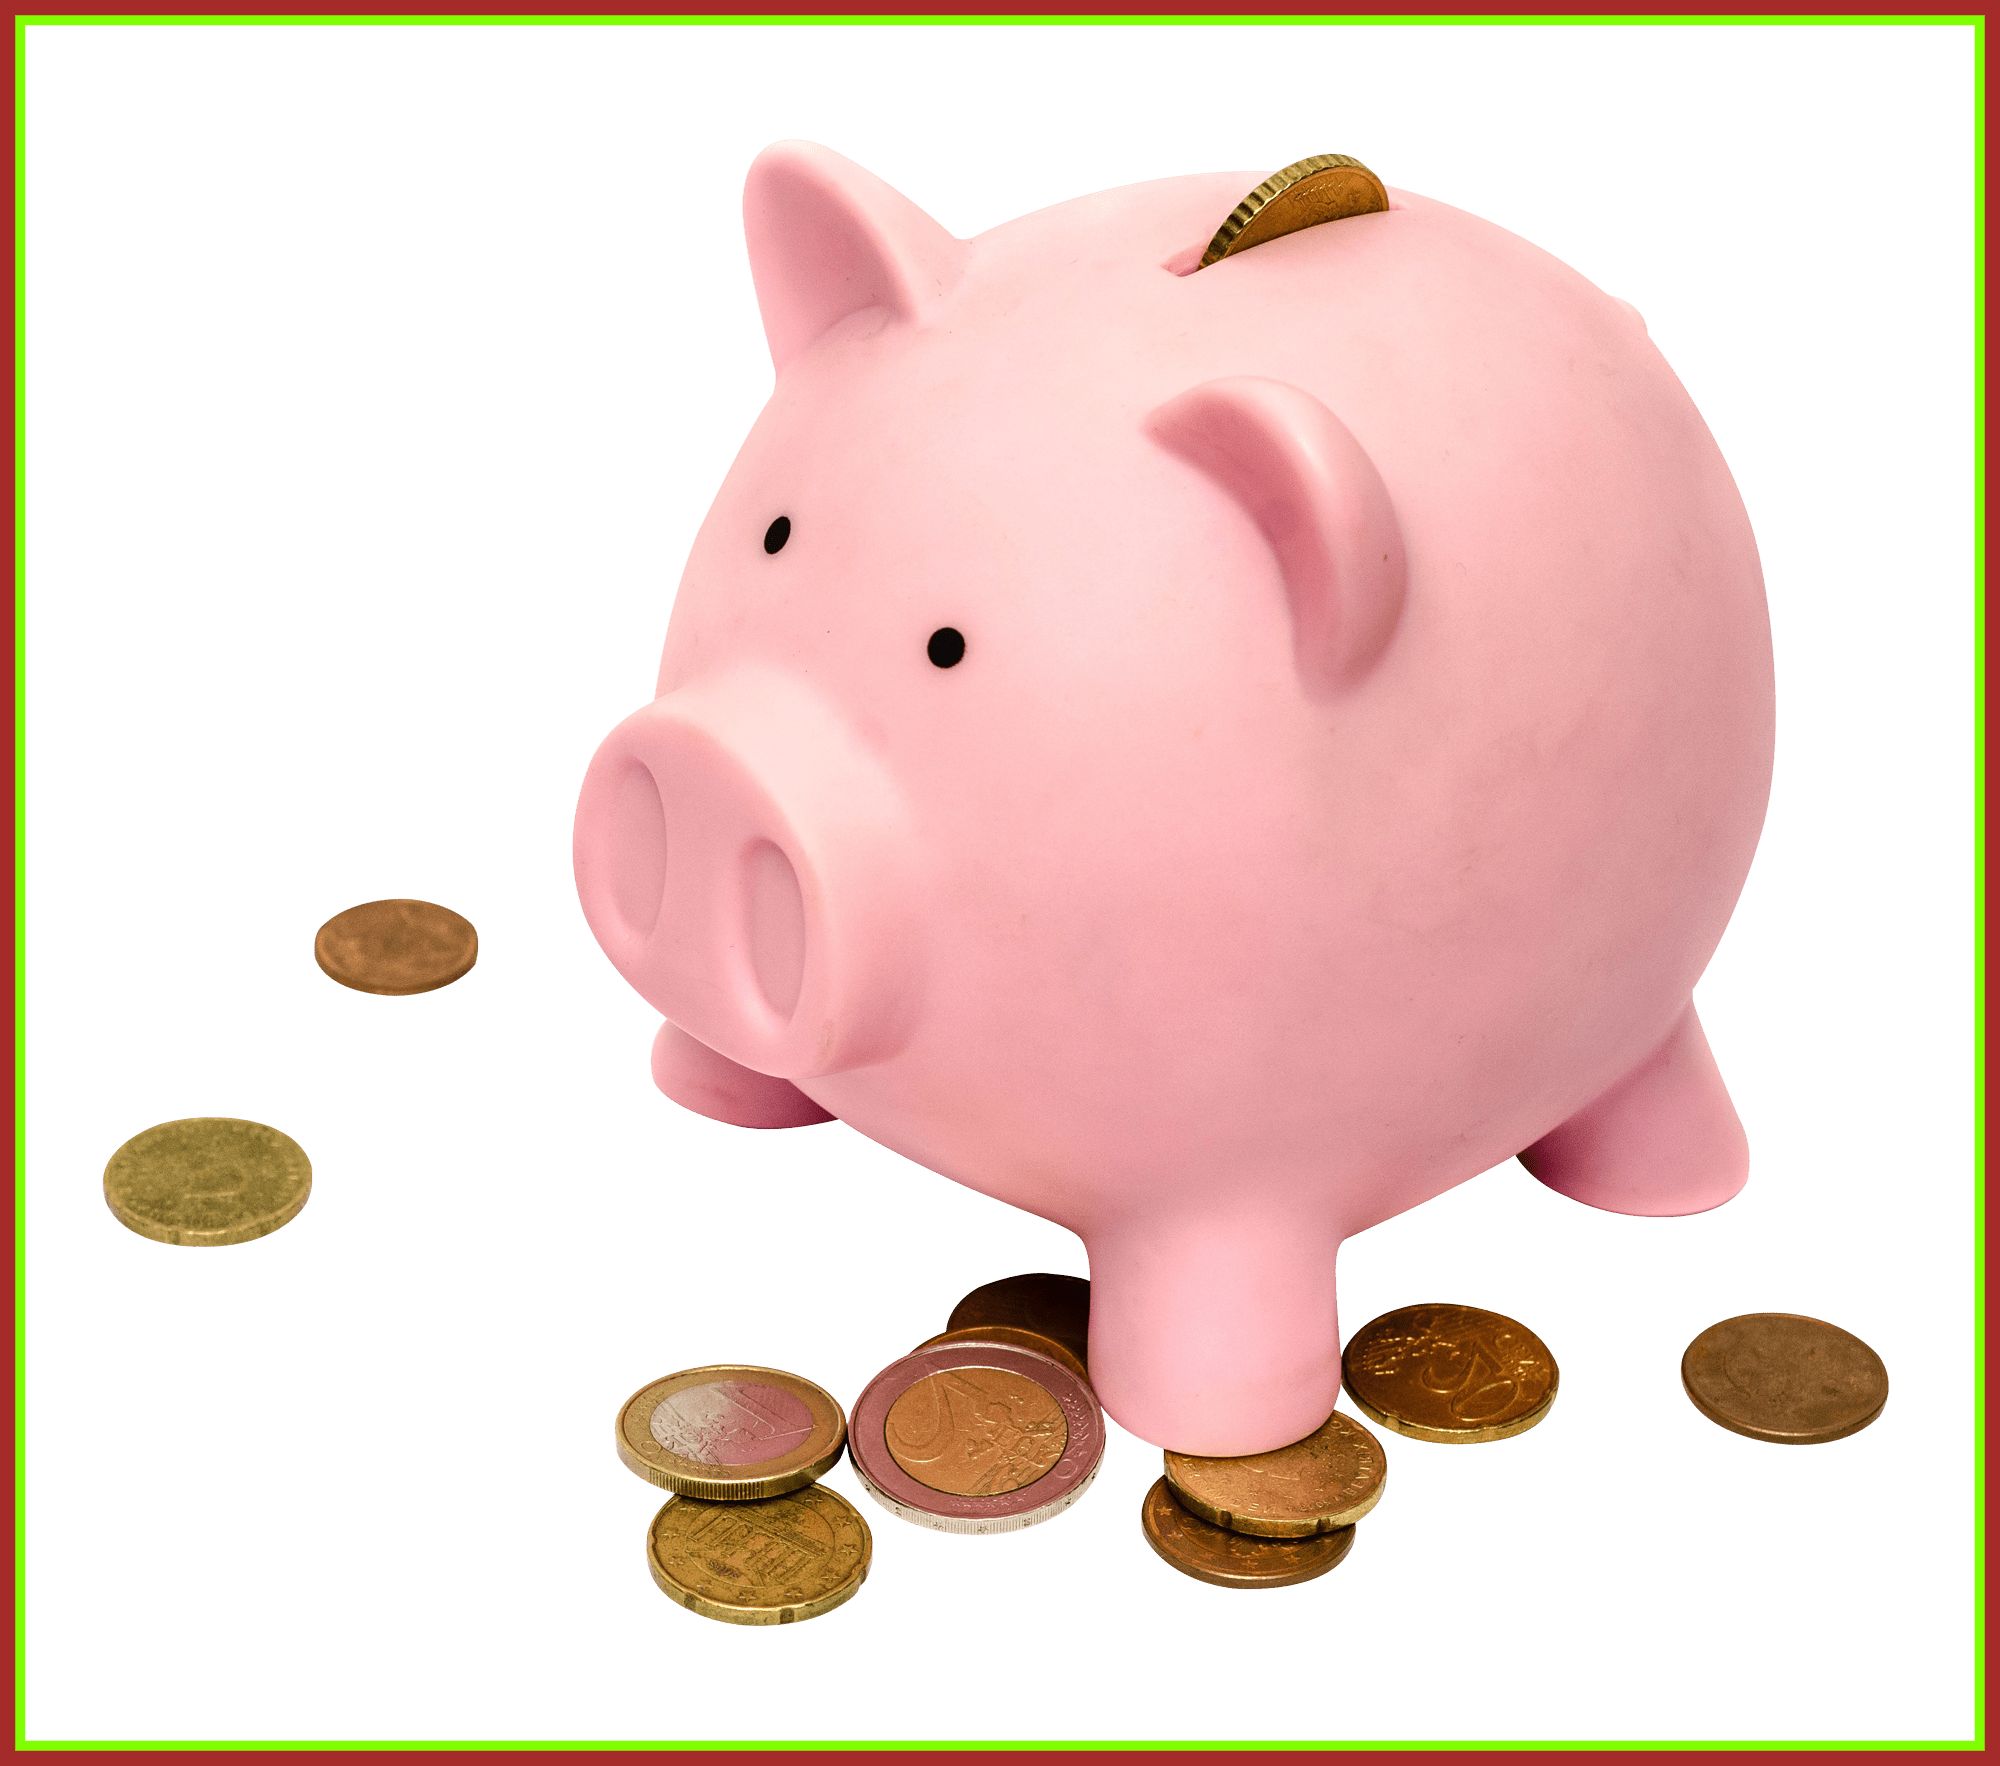 2000x1766 Best Piggy Bank Png Image Purepng Transparent Cc Library